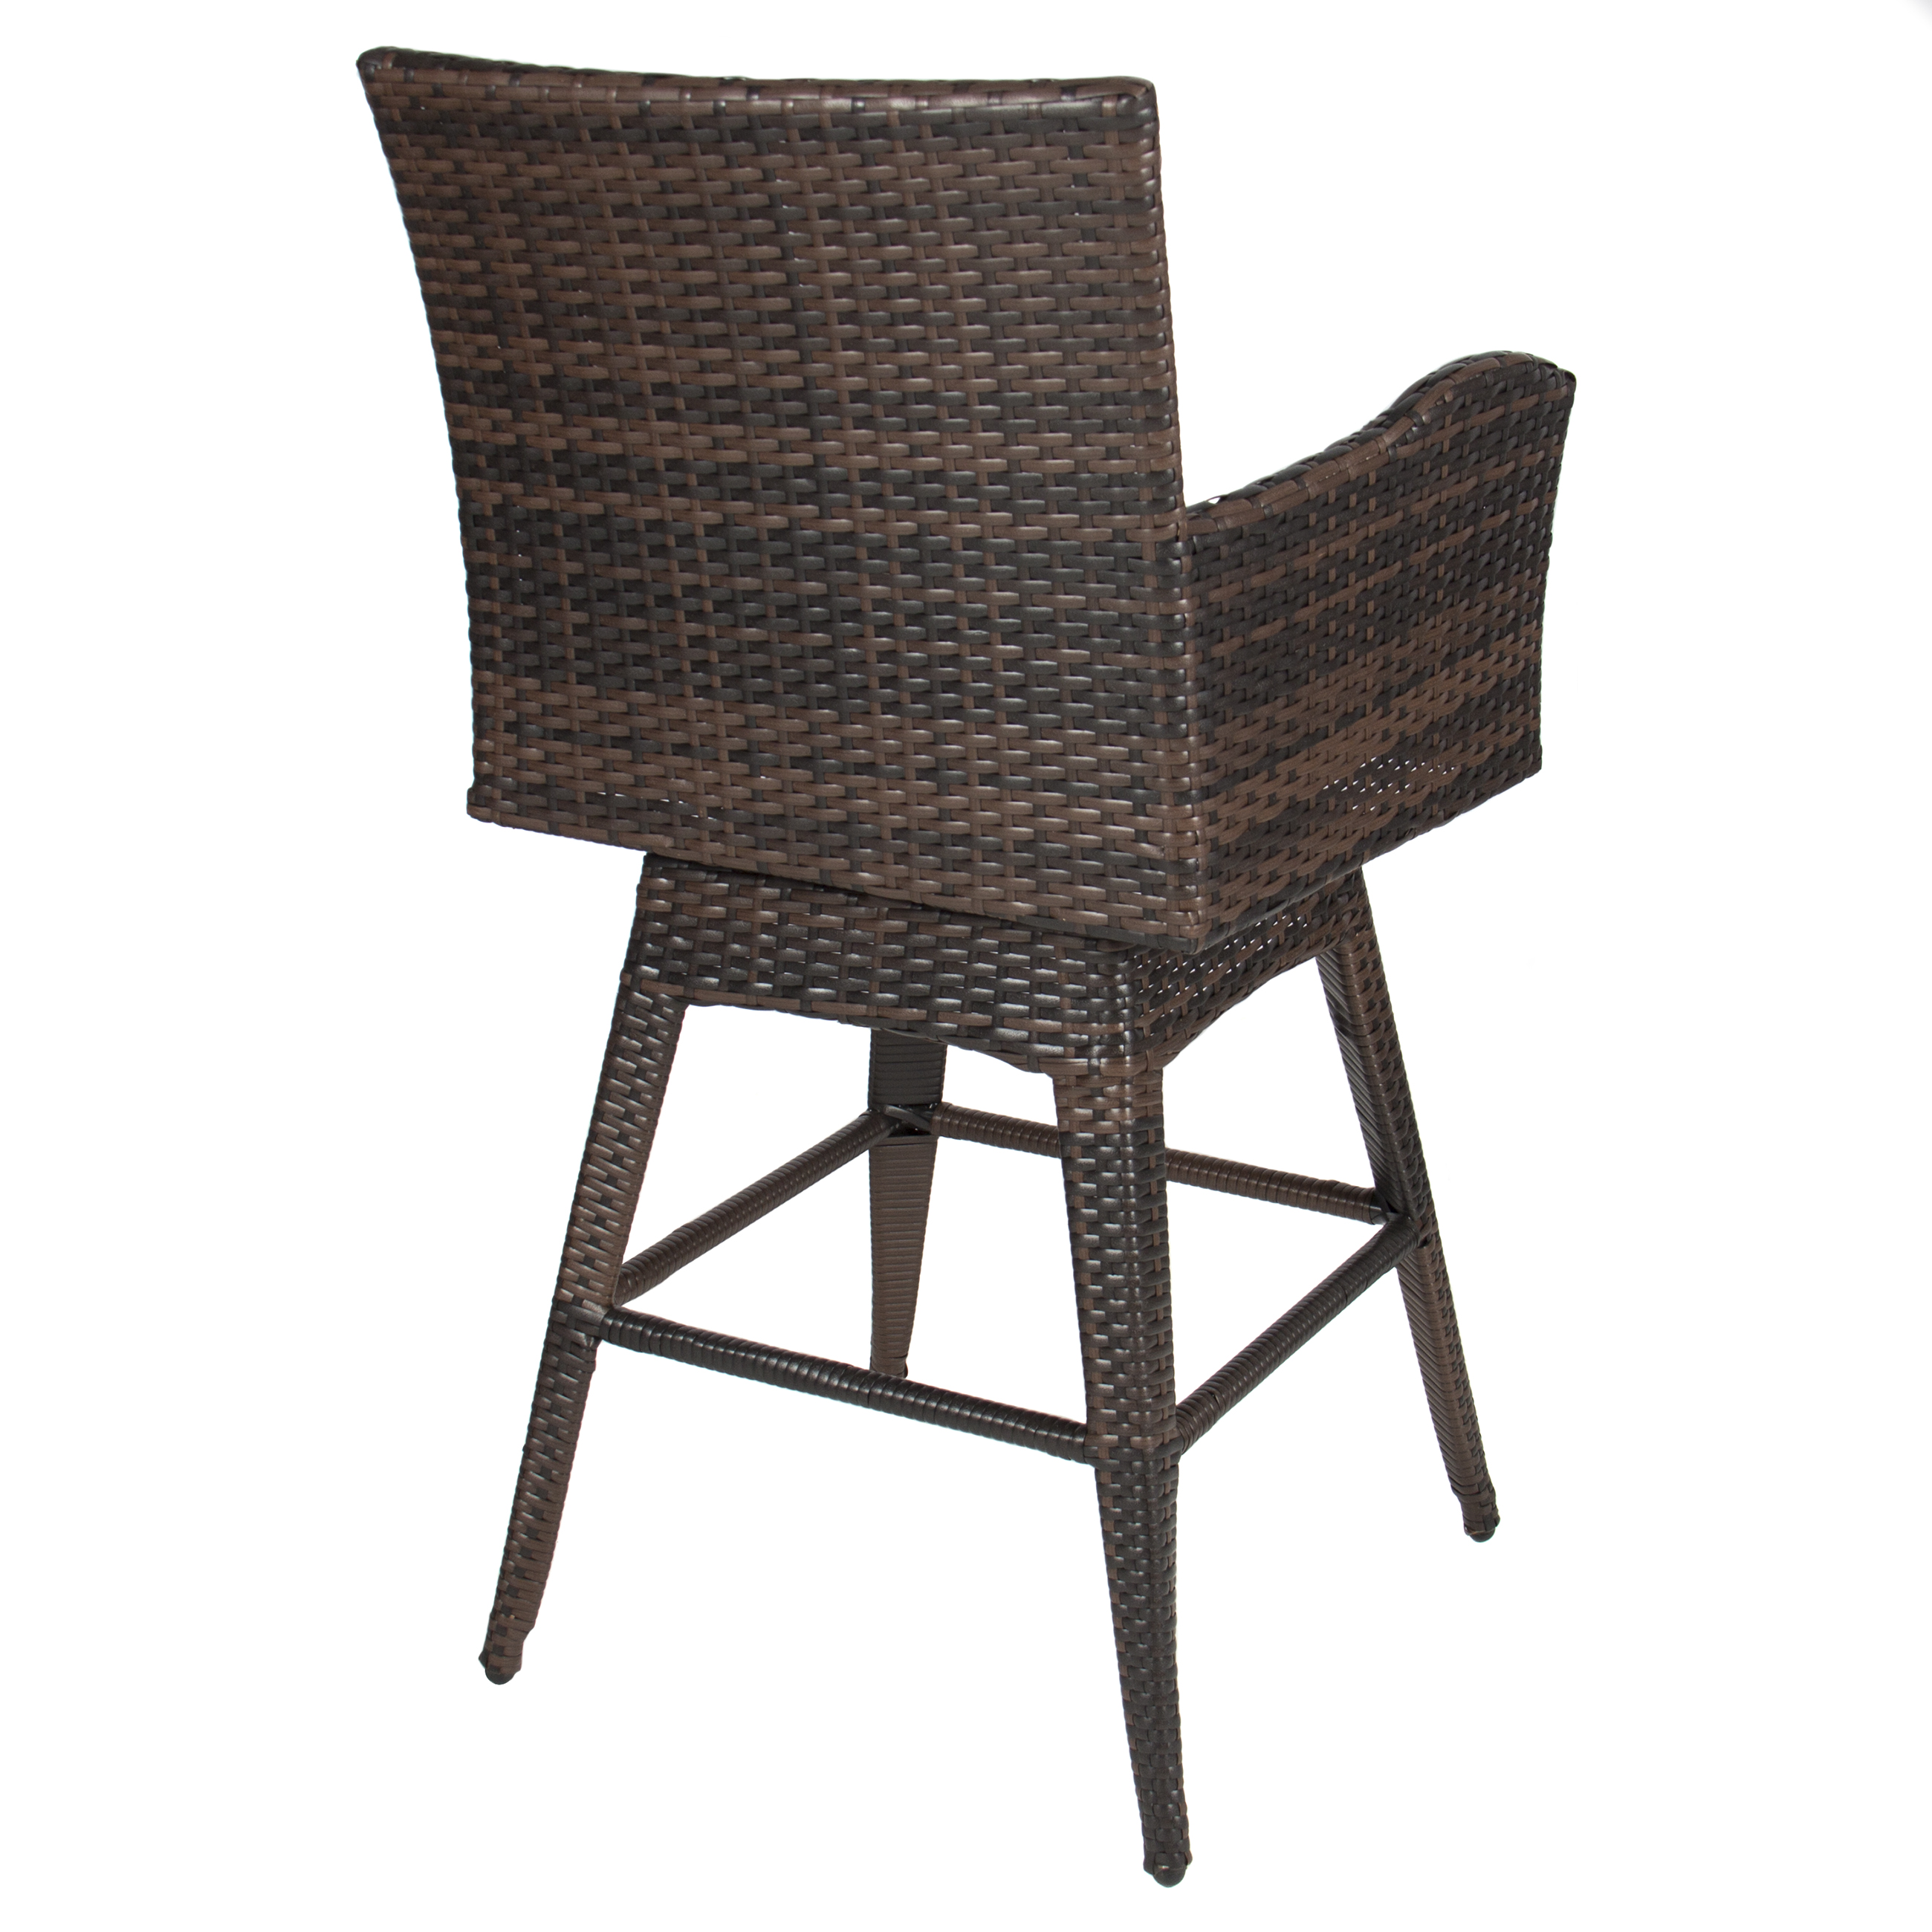 Outdoor Patio Furniture All Weather Brown Pe Wicker Swivel Bar Stool W Cushion Walmart Com